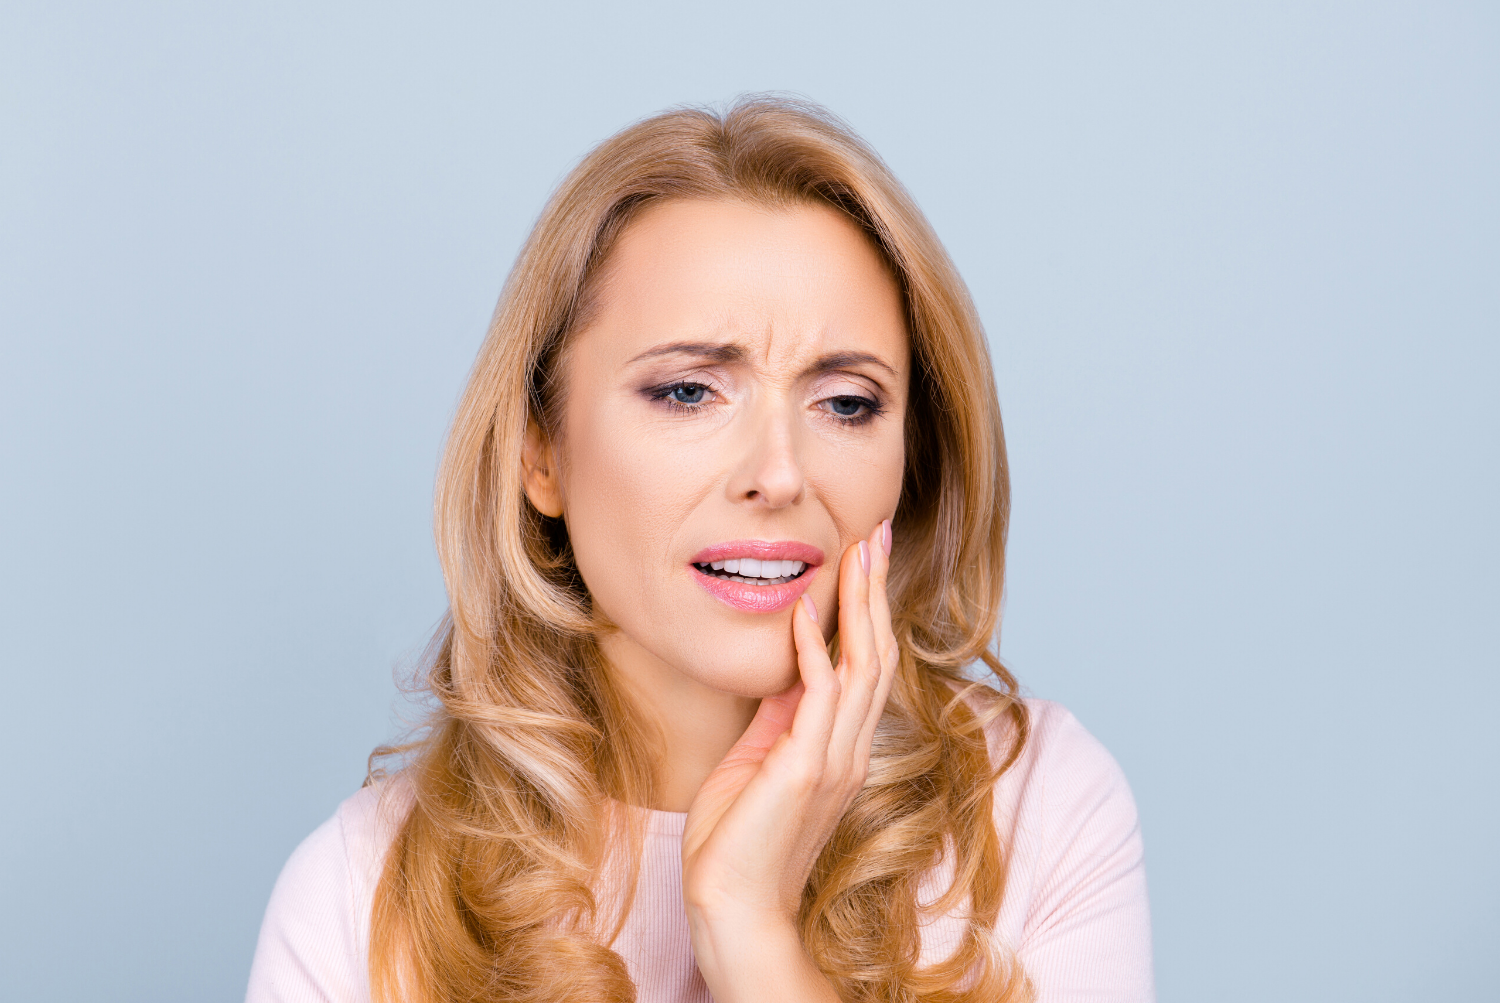 Causes of Tooth Pain